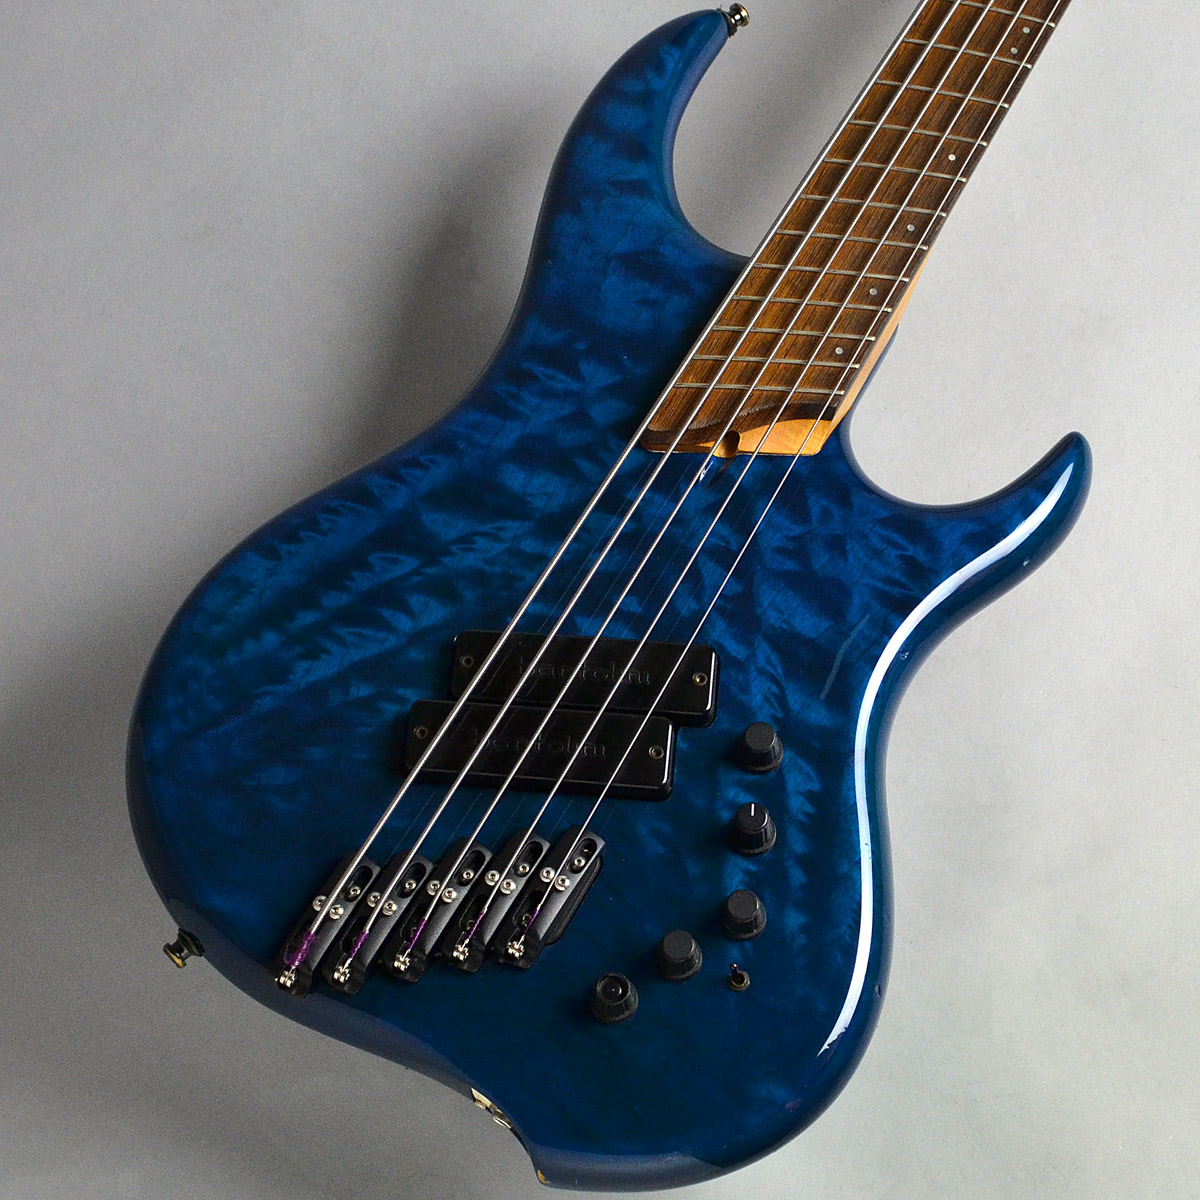 Lee Sklar Signature 5st Quilted Mapleのボディトップ-アップ画像